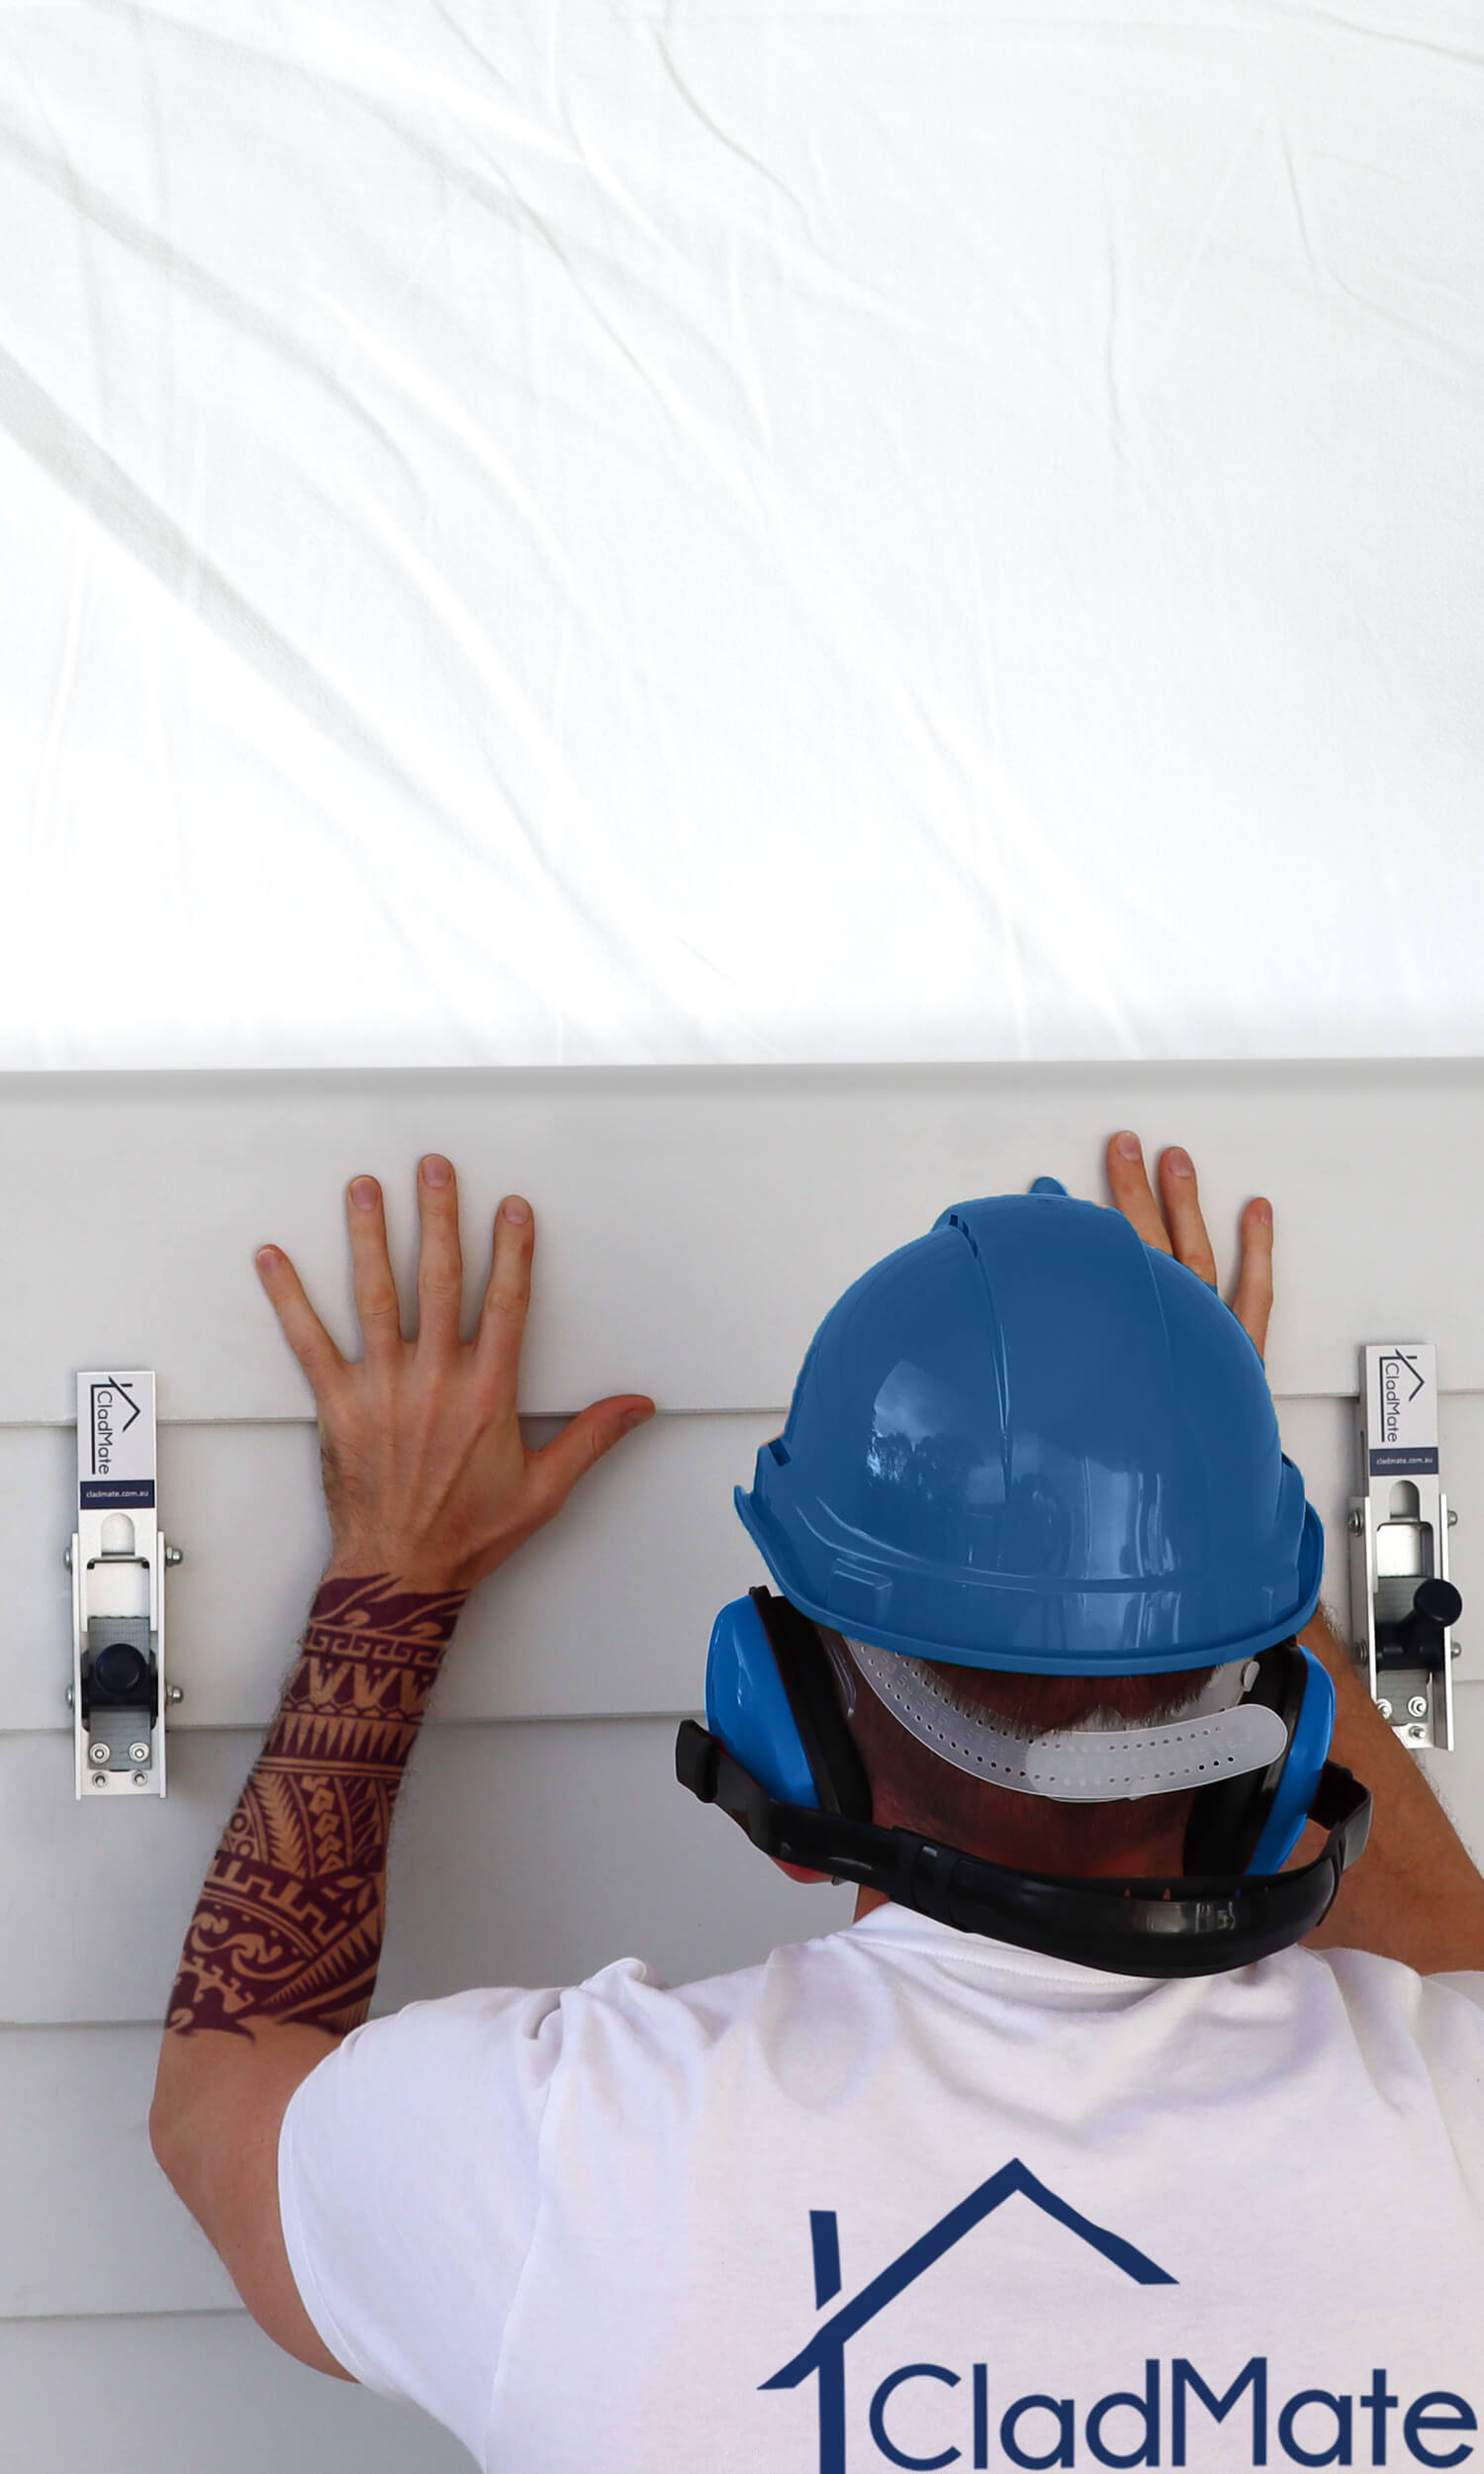 CladMate WeatherBoard Clamp